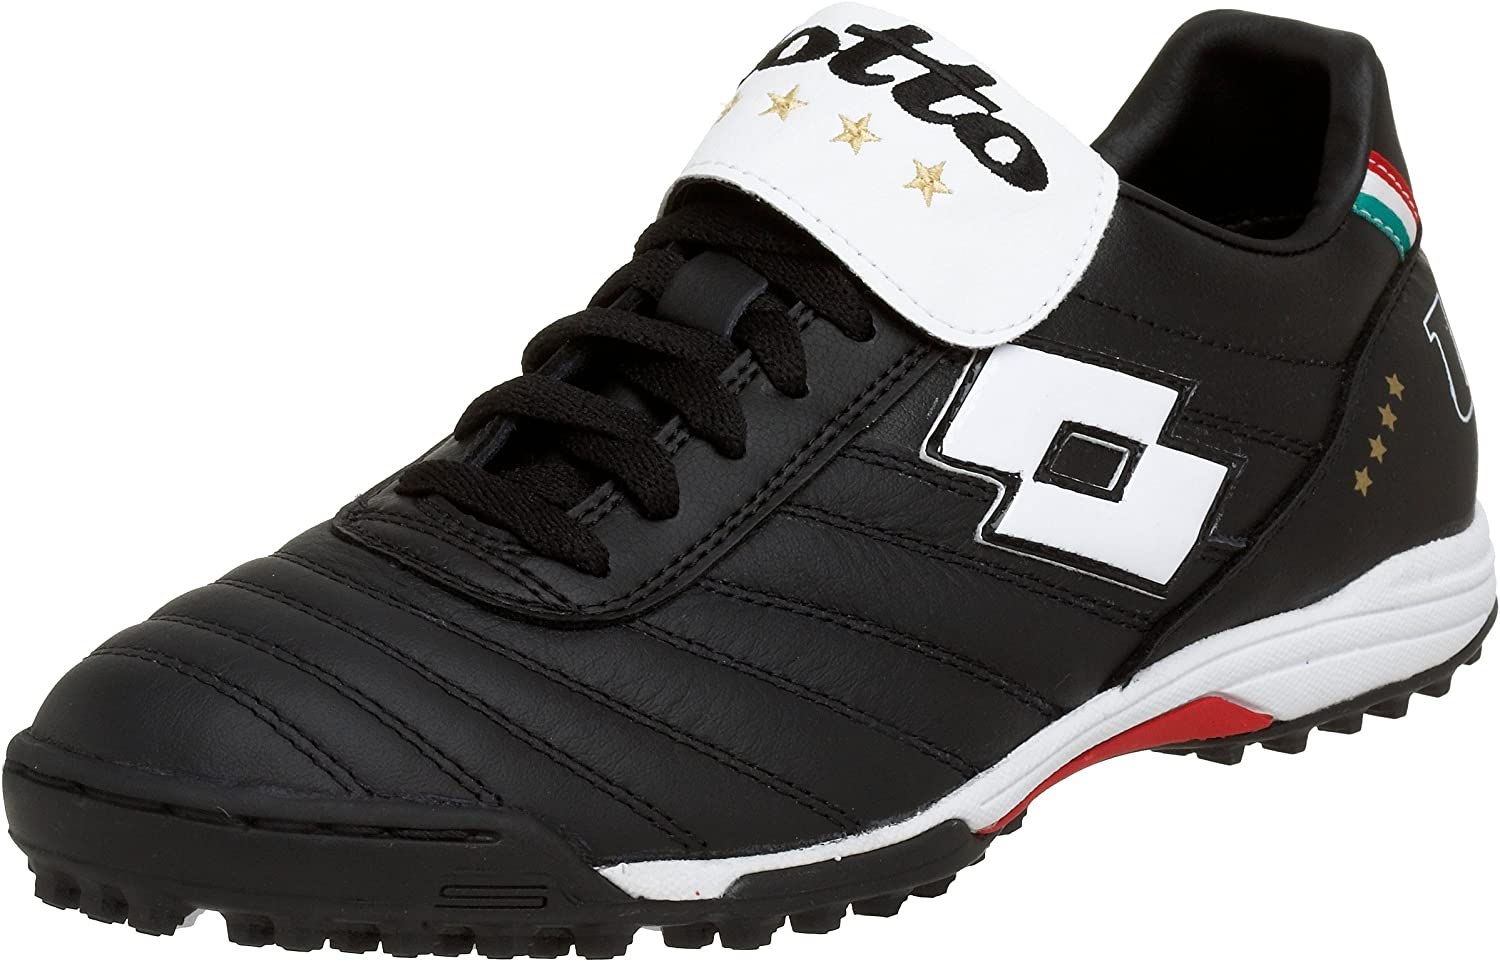 Lotto Men's Stadio Mondiale TF Soccer shoes